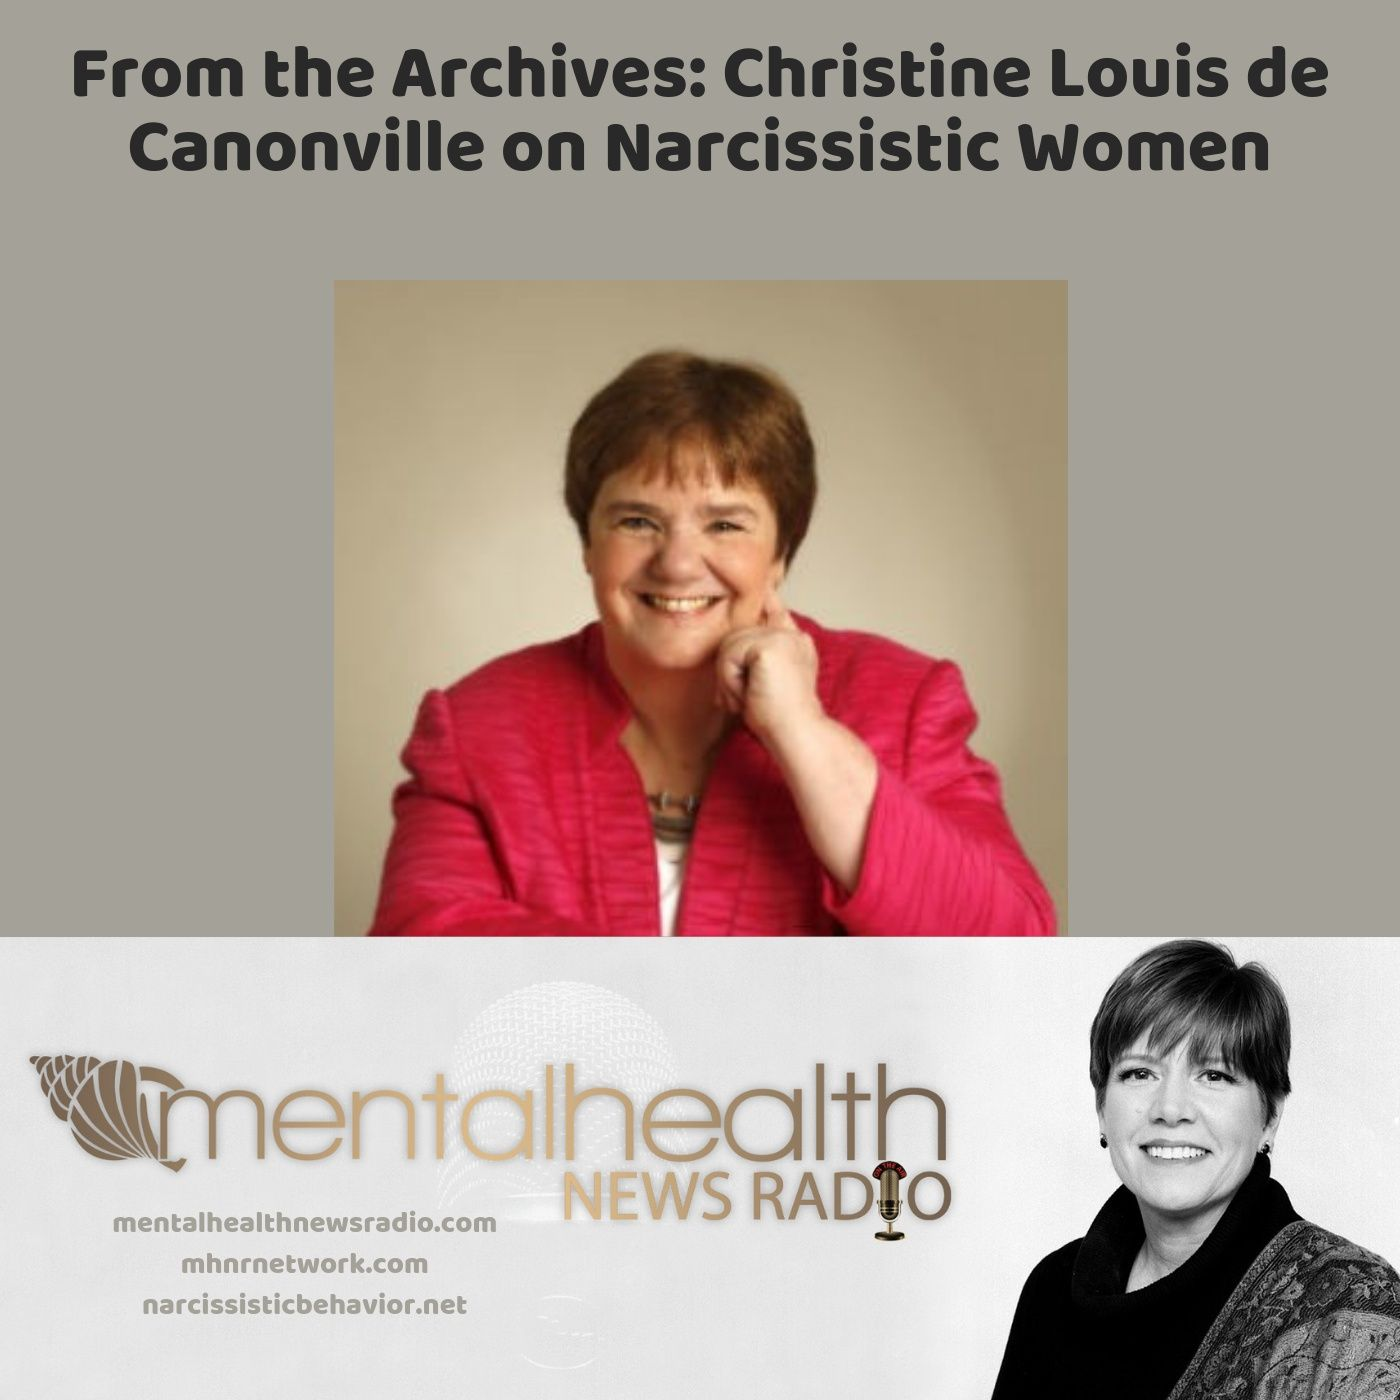 Mental Health News Radio - From the Archives: Christine Louis de Canonville on Narcissistic Women